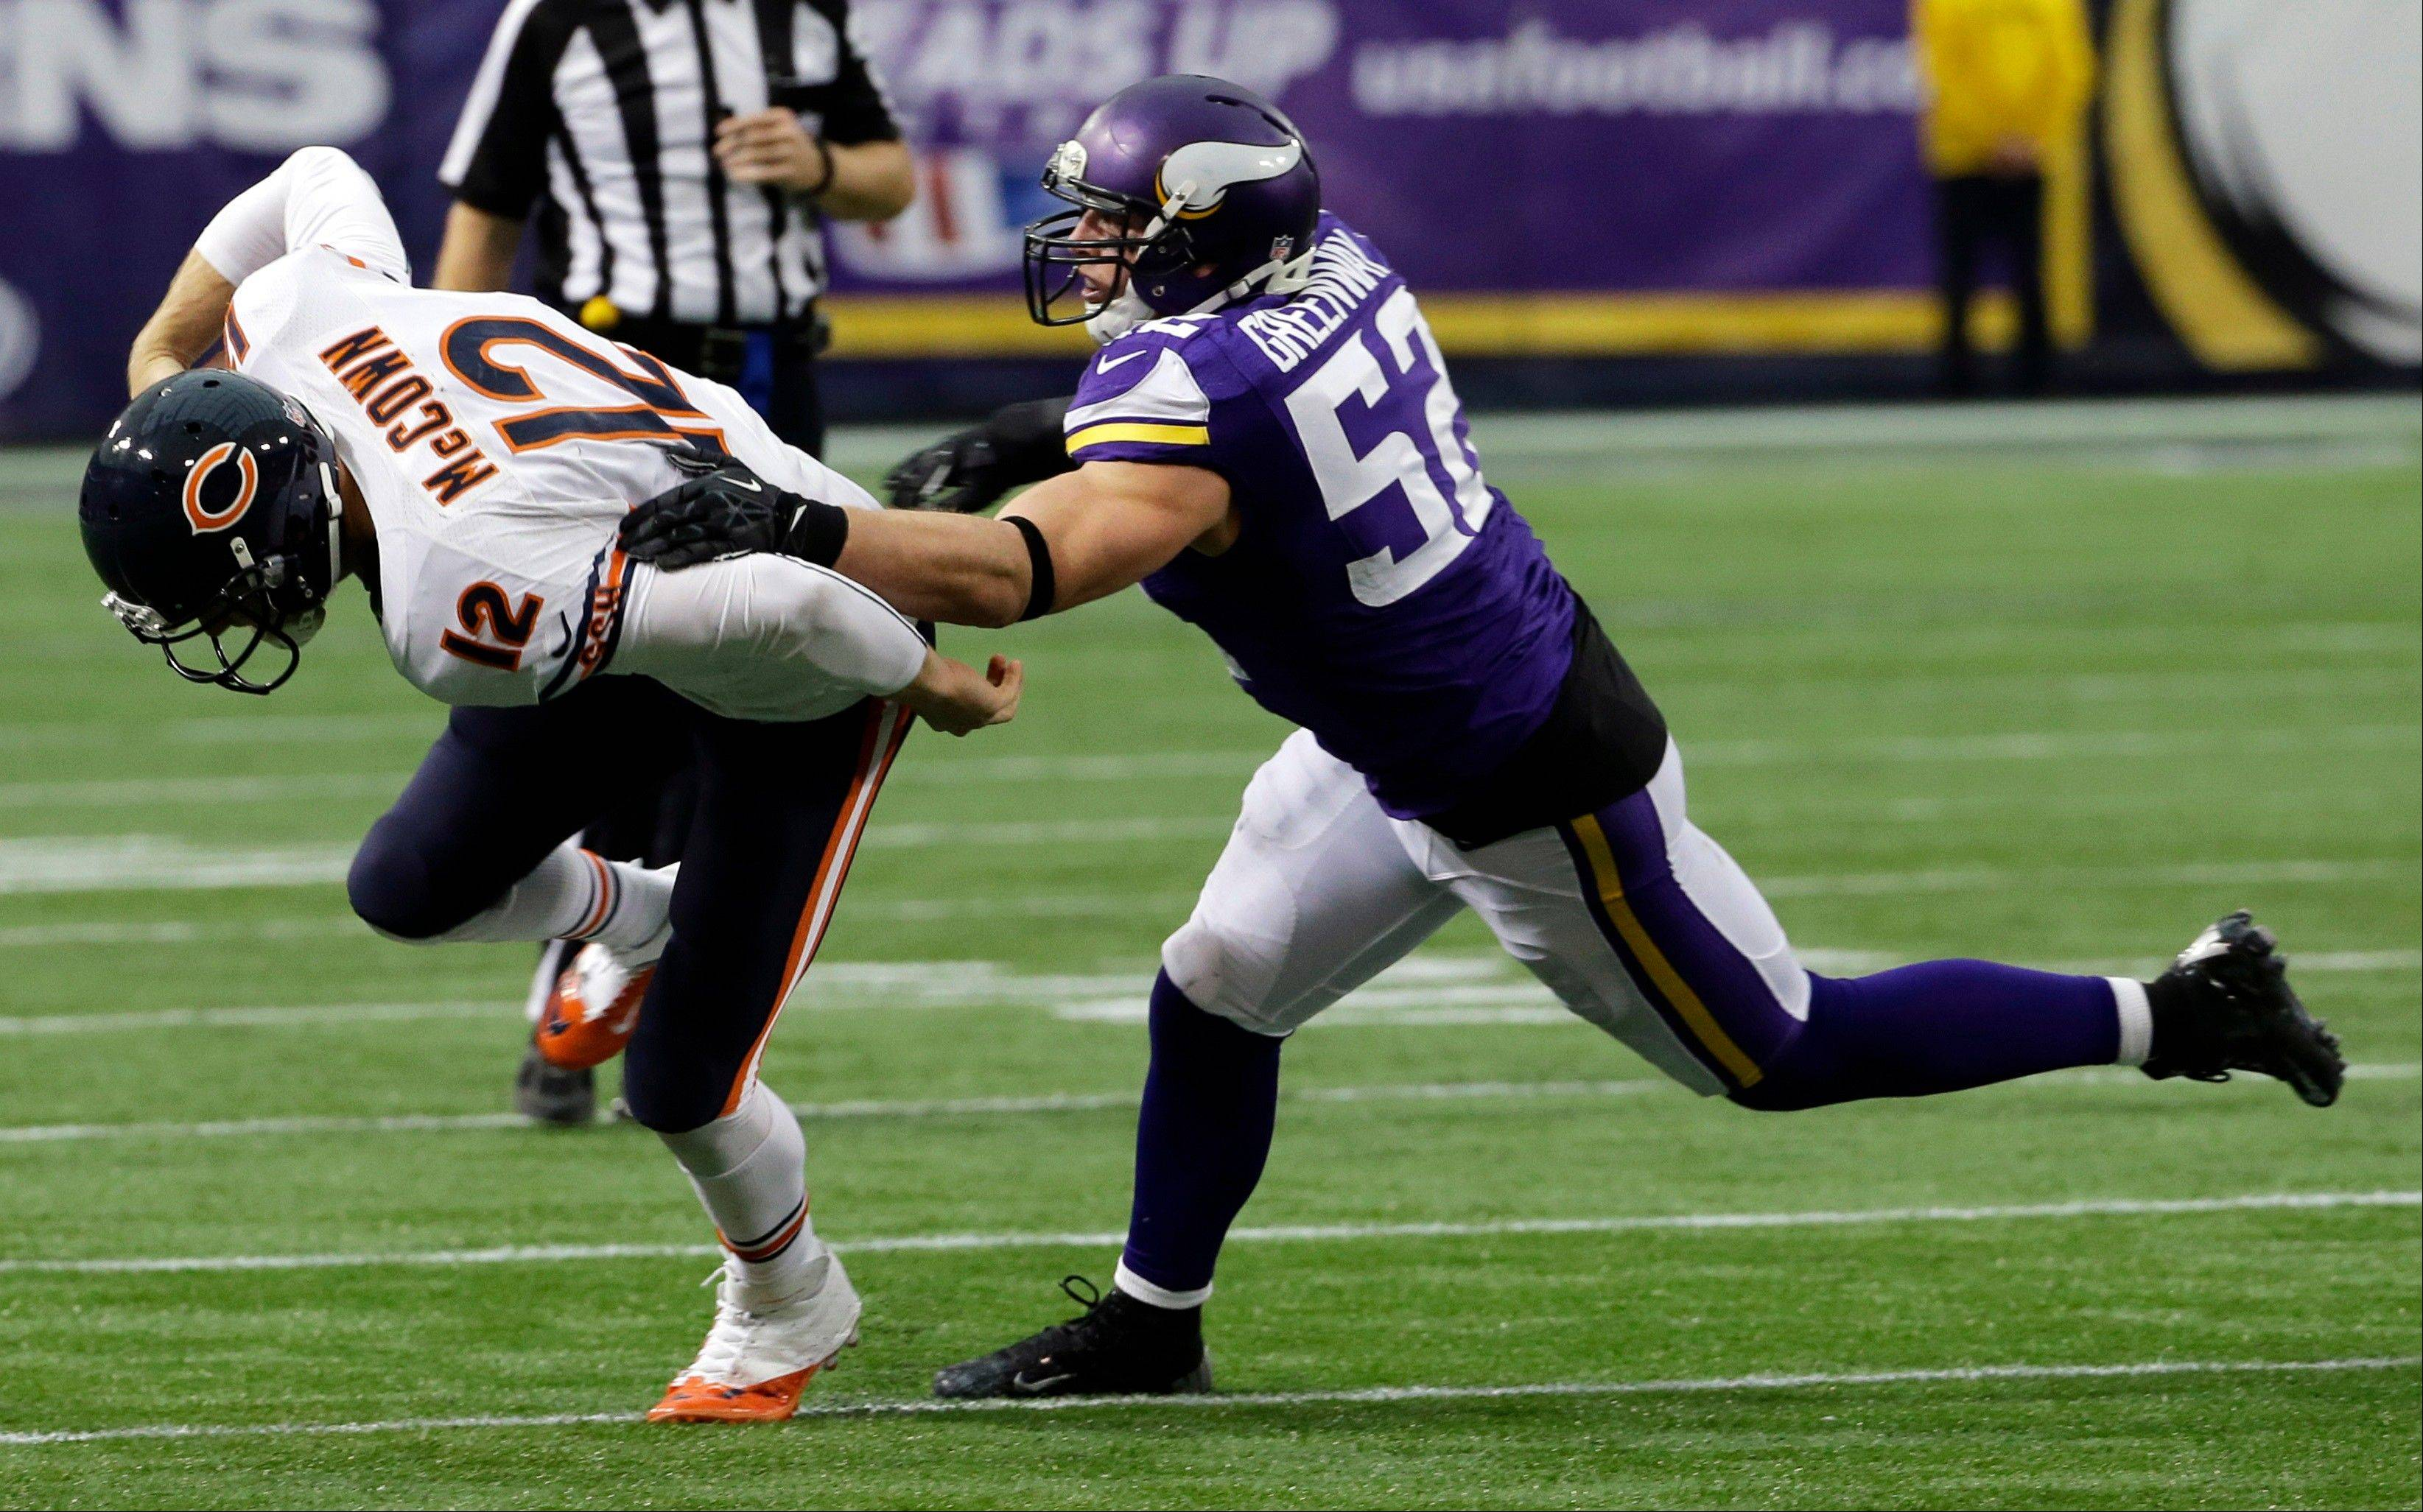 Chicago Bears quarterback Josh McCown, left, runs from Minnesota Vikings outside linebacker Chad Greenway during the first half of an NFL football game on Sunday, Dec. 1, 2013, in Minneapolis.